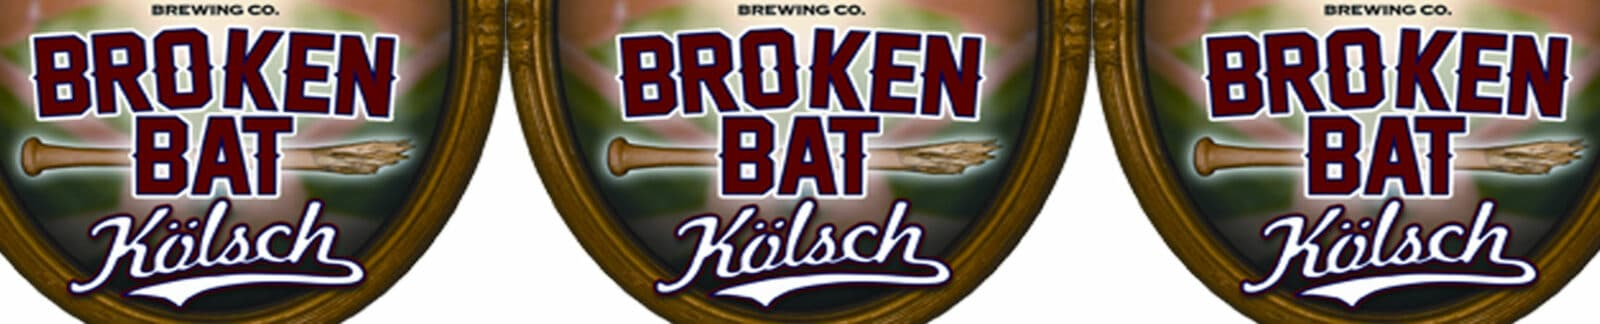 Broken Bat Kolsch header